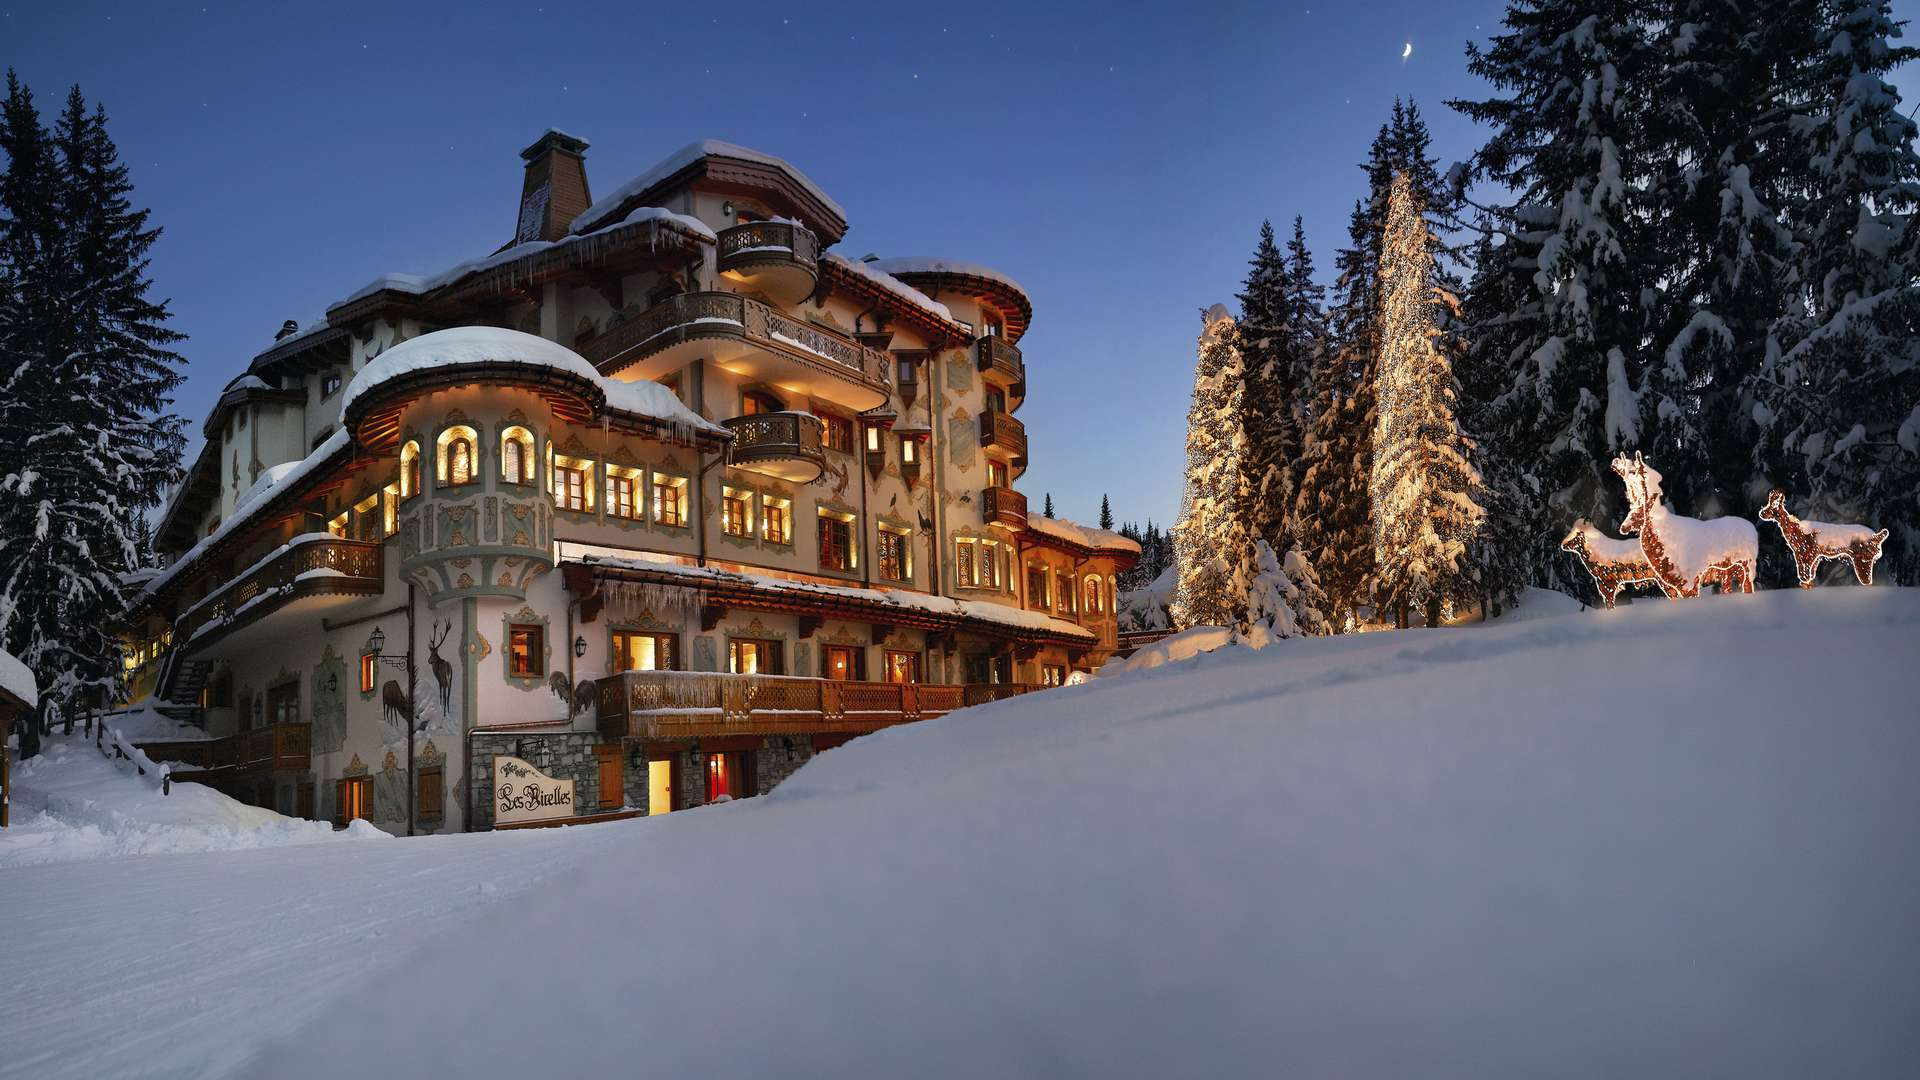 Hotel Les Airelles in Courchevel 1850